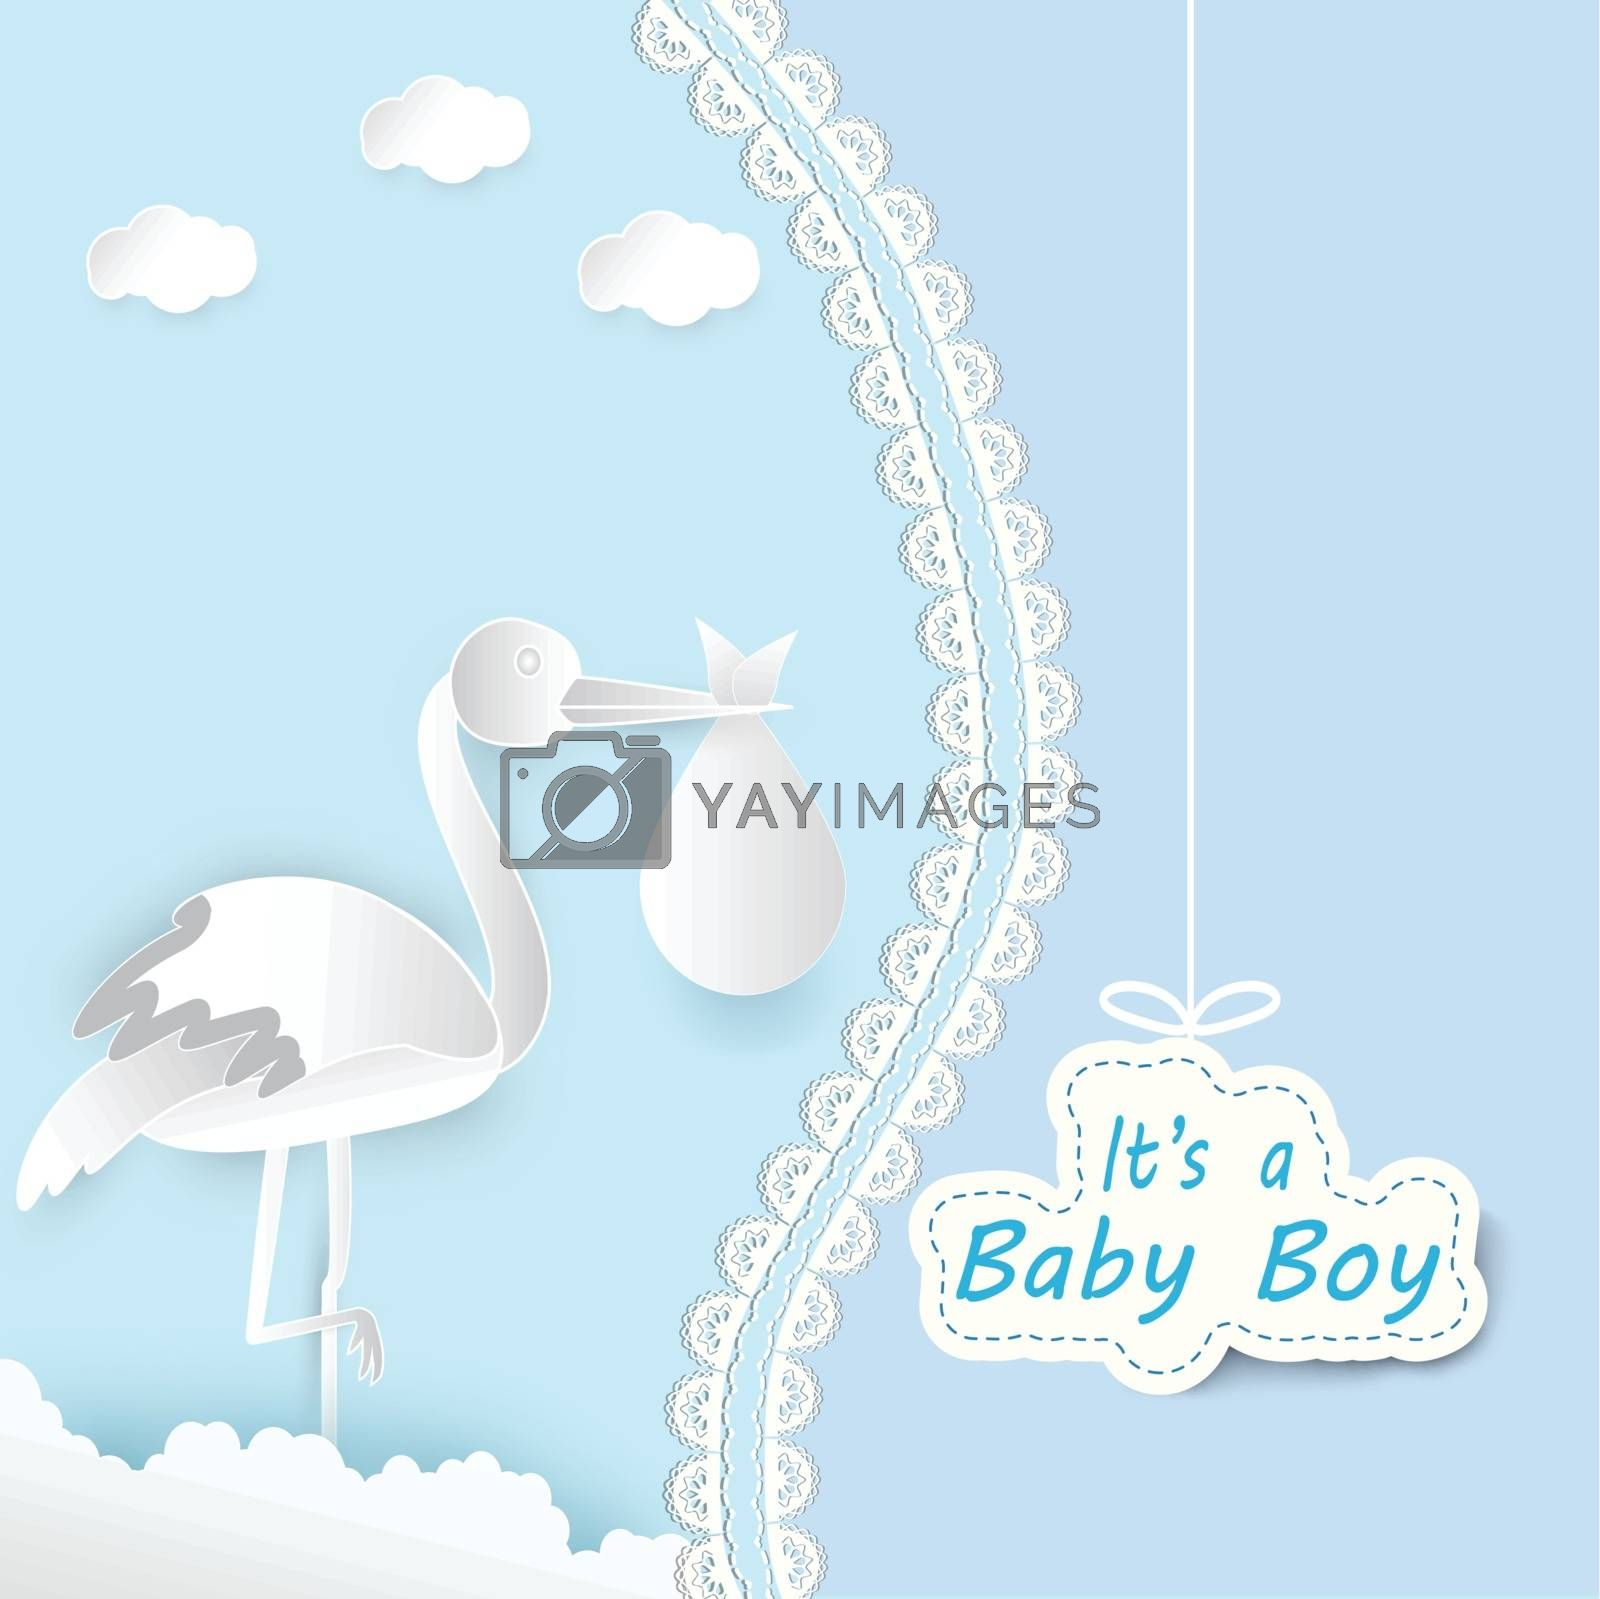 Paper art of stork with baby and cloud baby boy shower card paper cut style illustration blue background